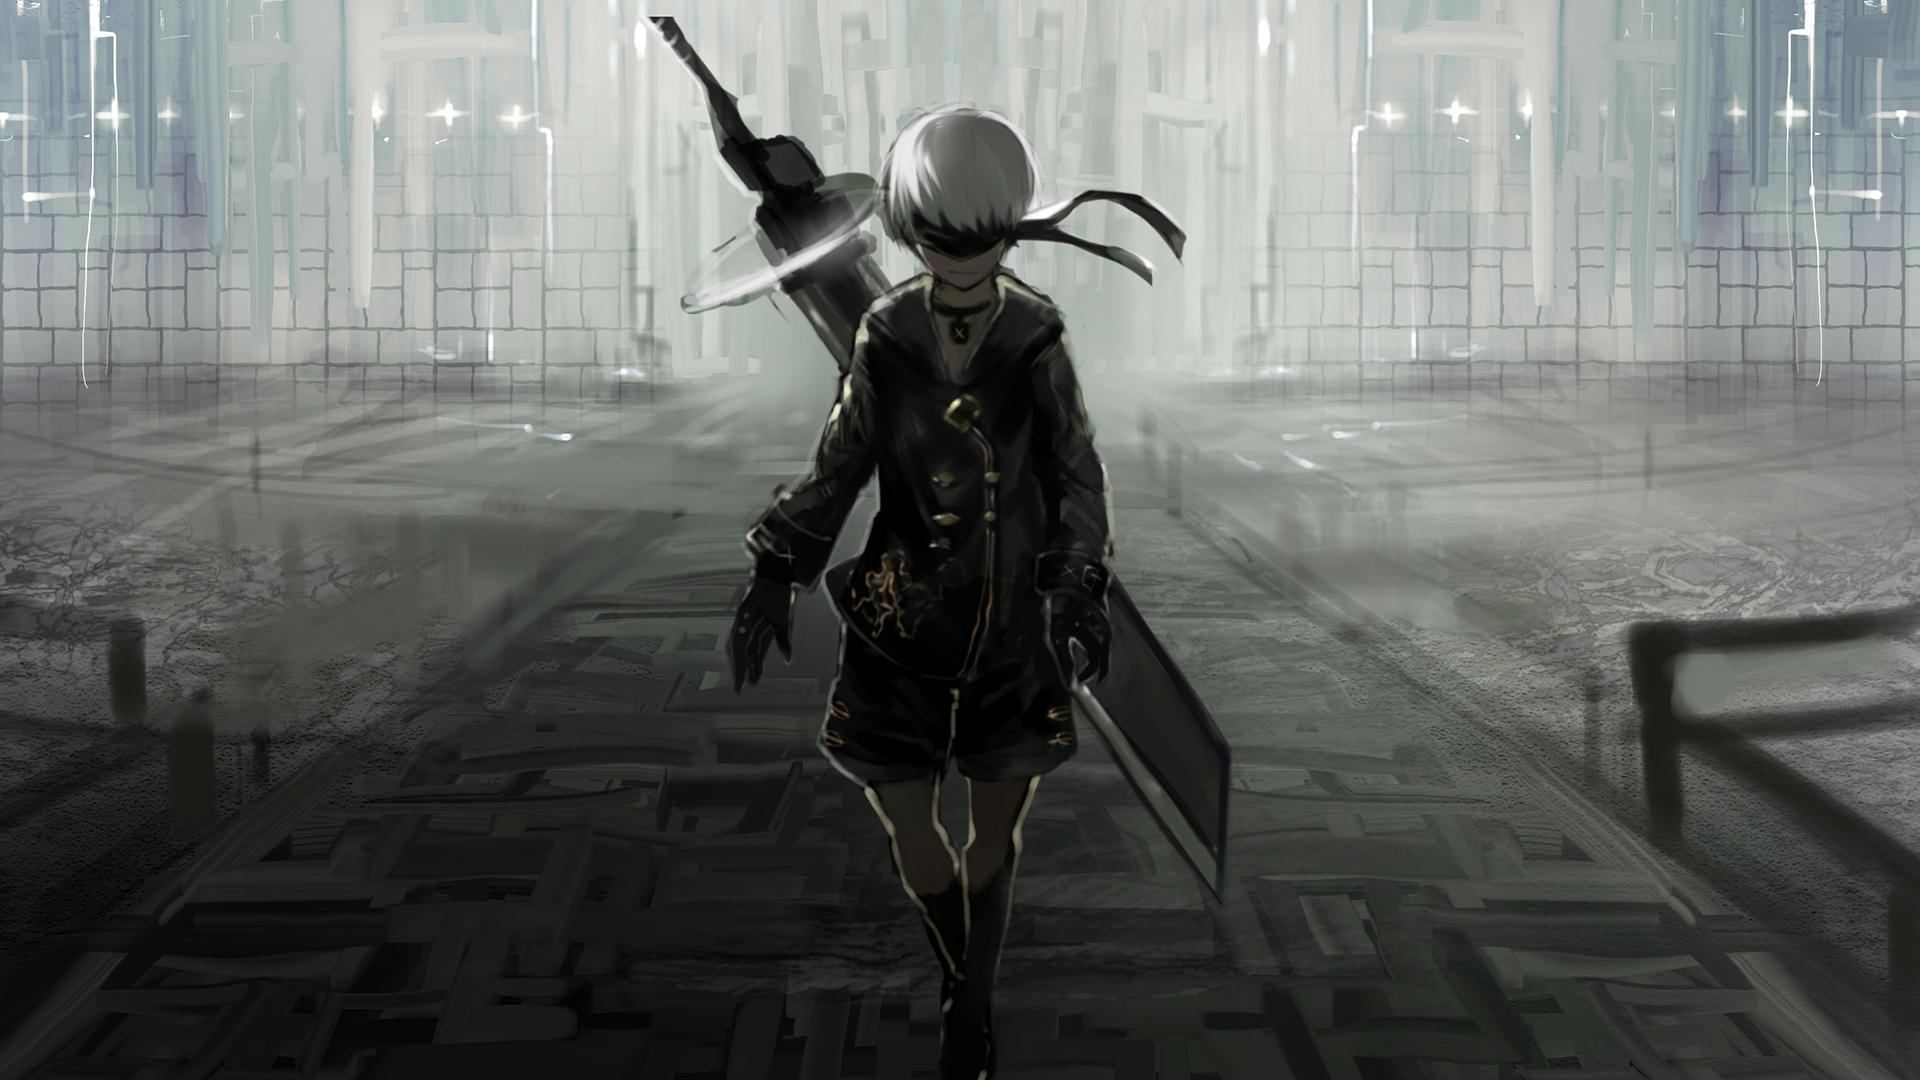 Nier Automata Wallpapers Or Desktop Backgrounds: NieR: Automata Wallpapers, Pictures, Images